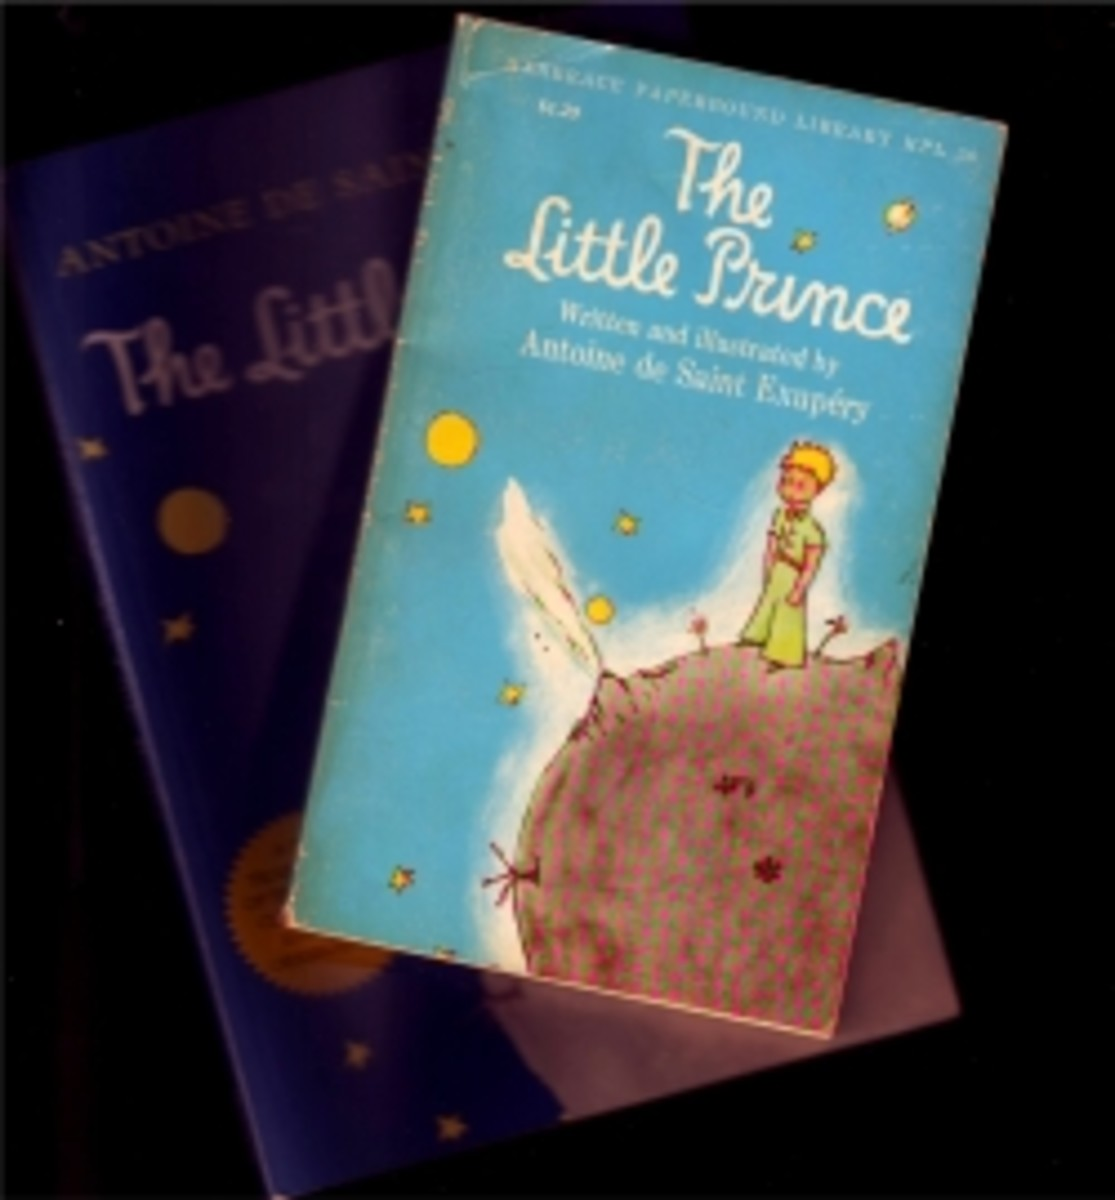 The Little Prince: Truth in Metaphor